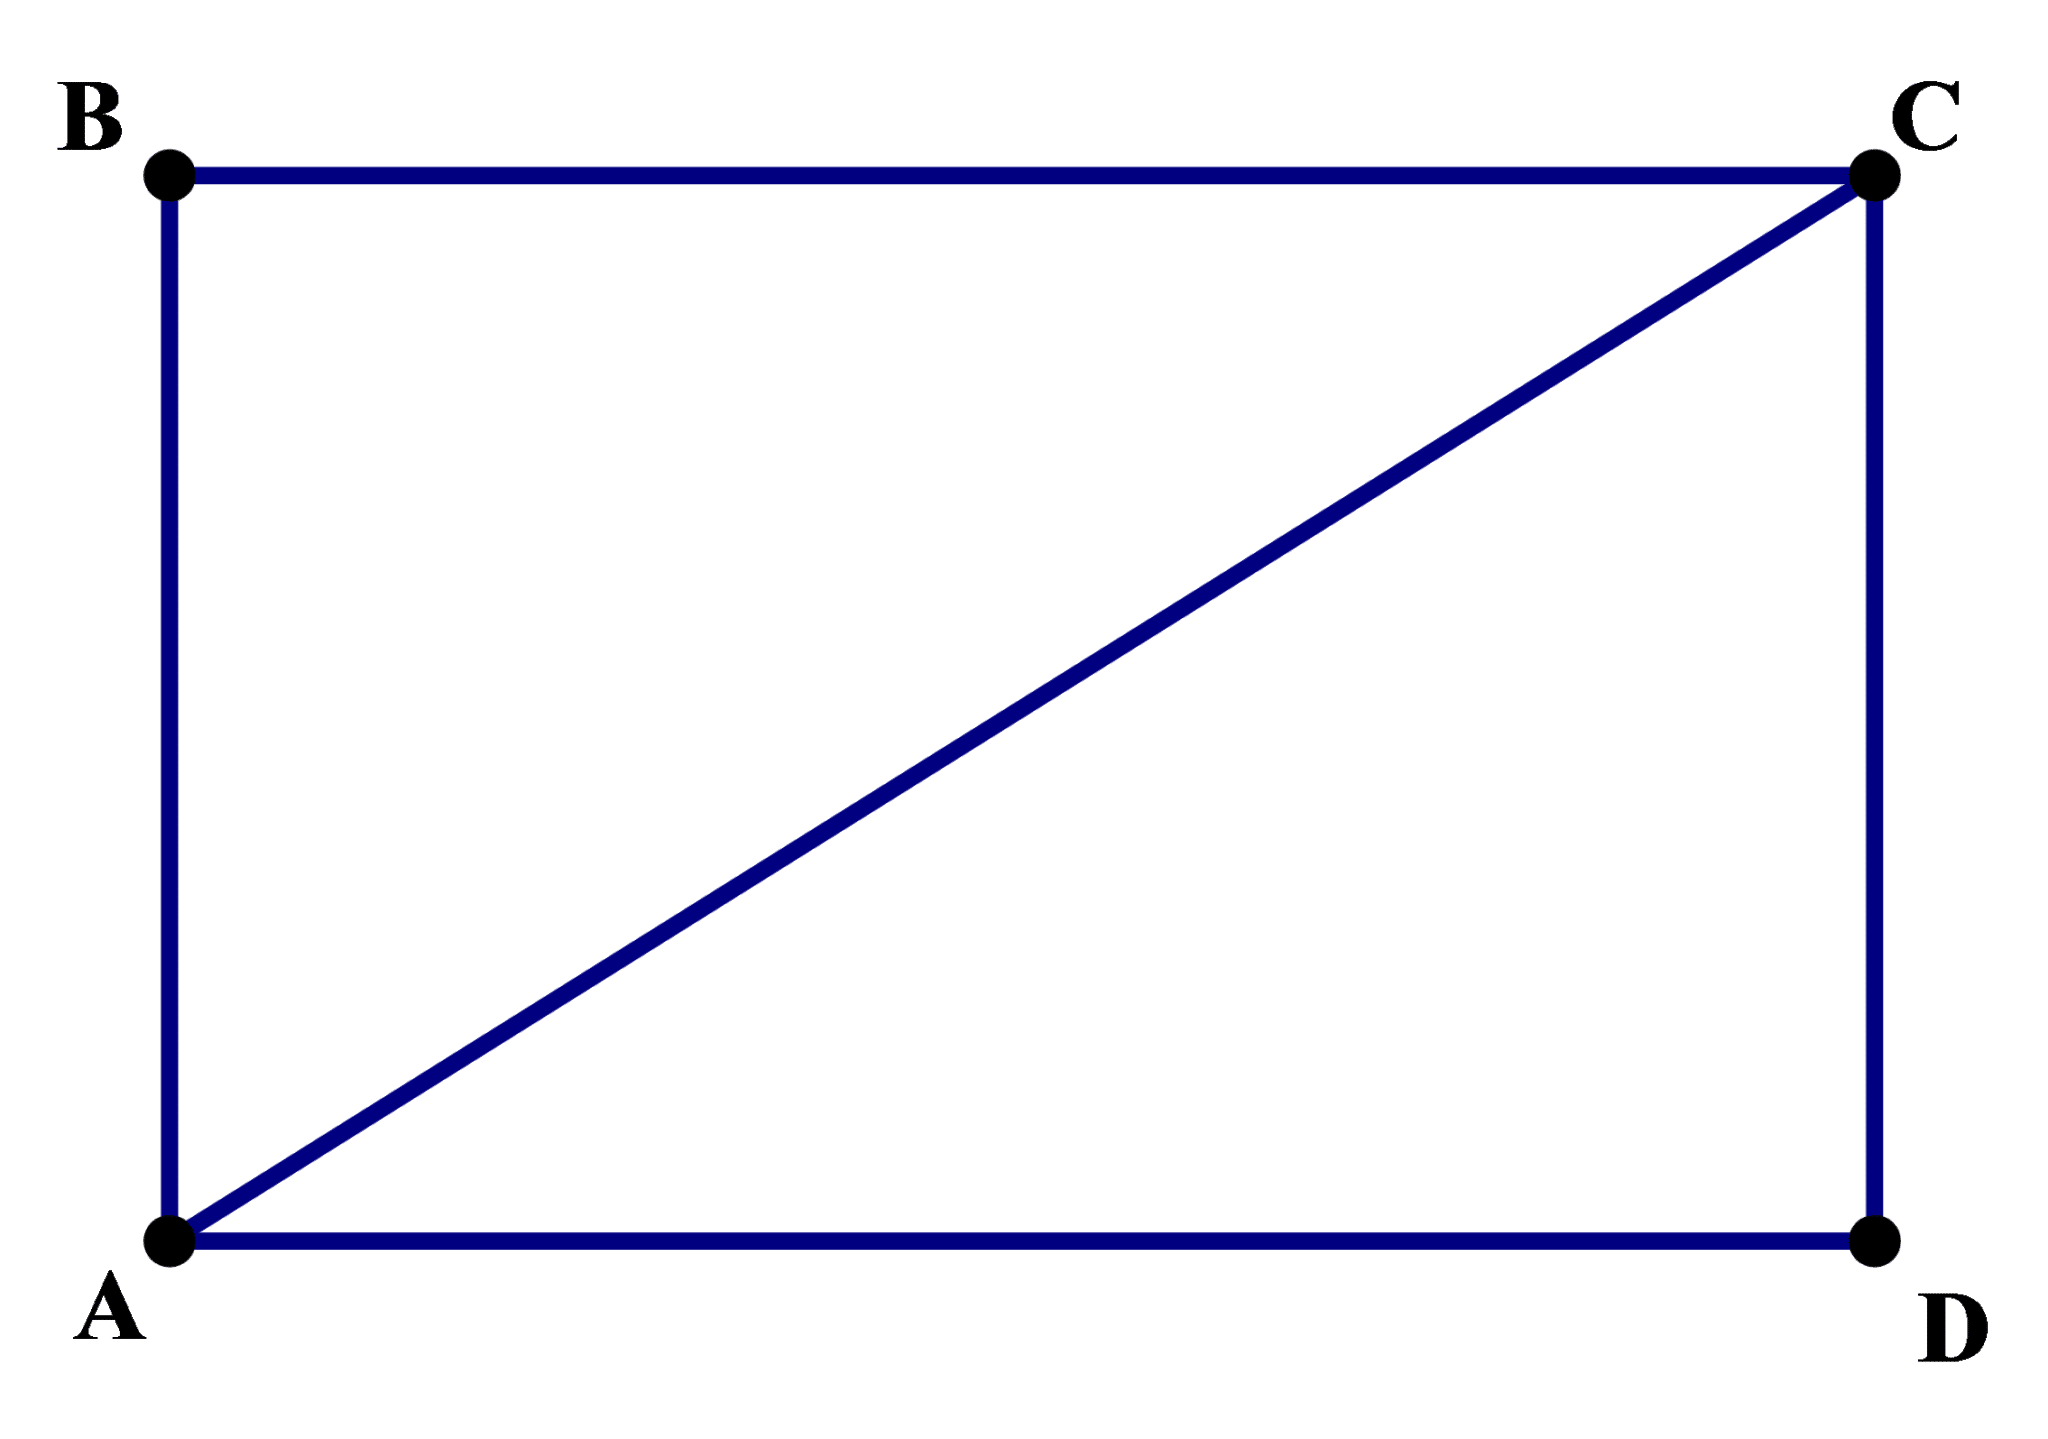 Gre geometry diagram assumptions magoosh gre blog ccuart Image collections